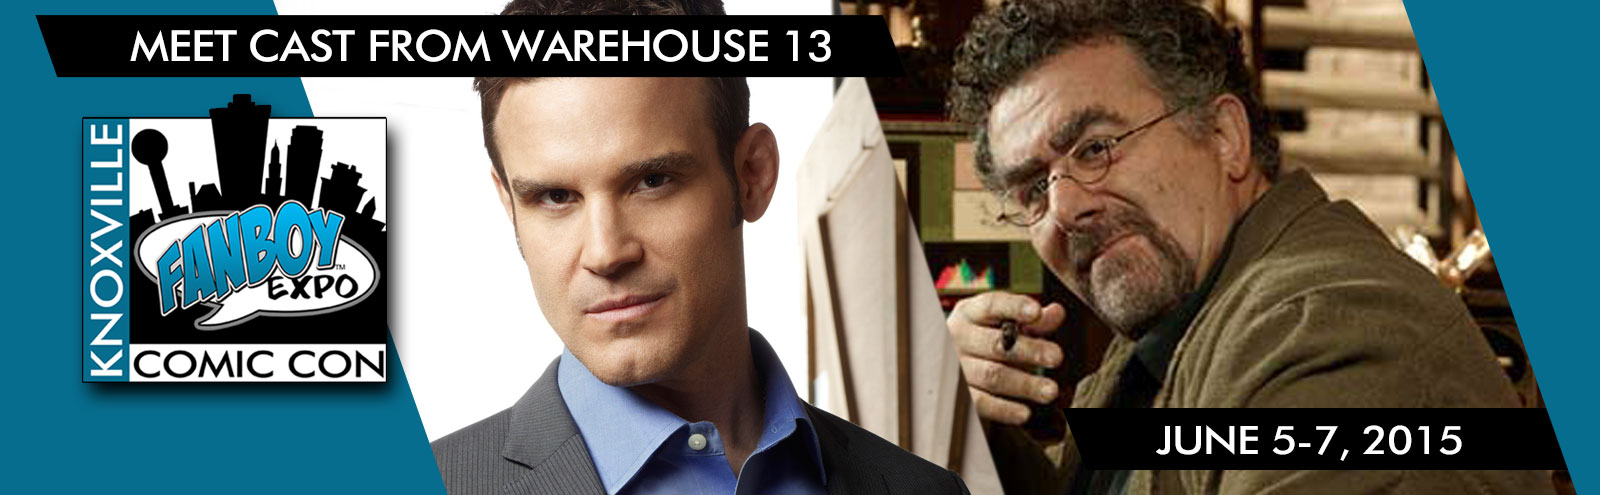 featured-warehouse-13